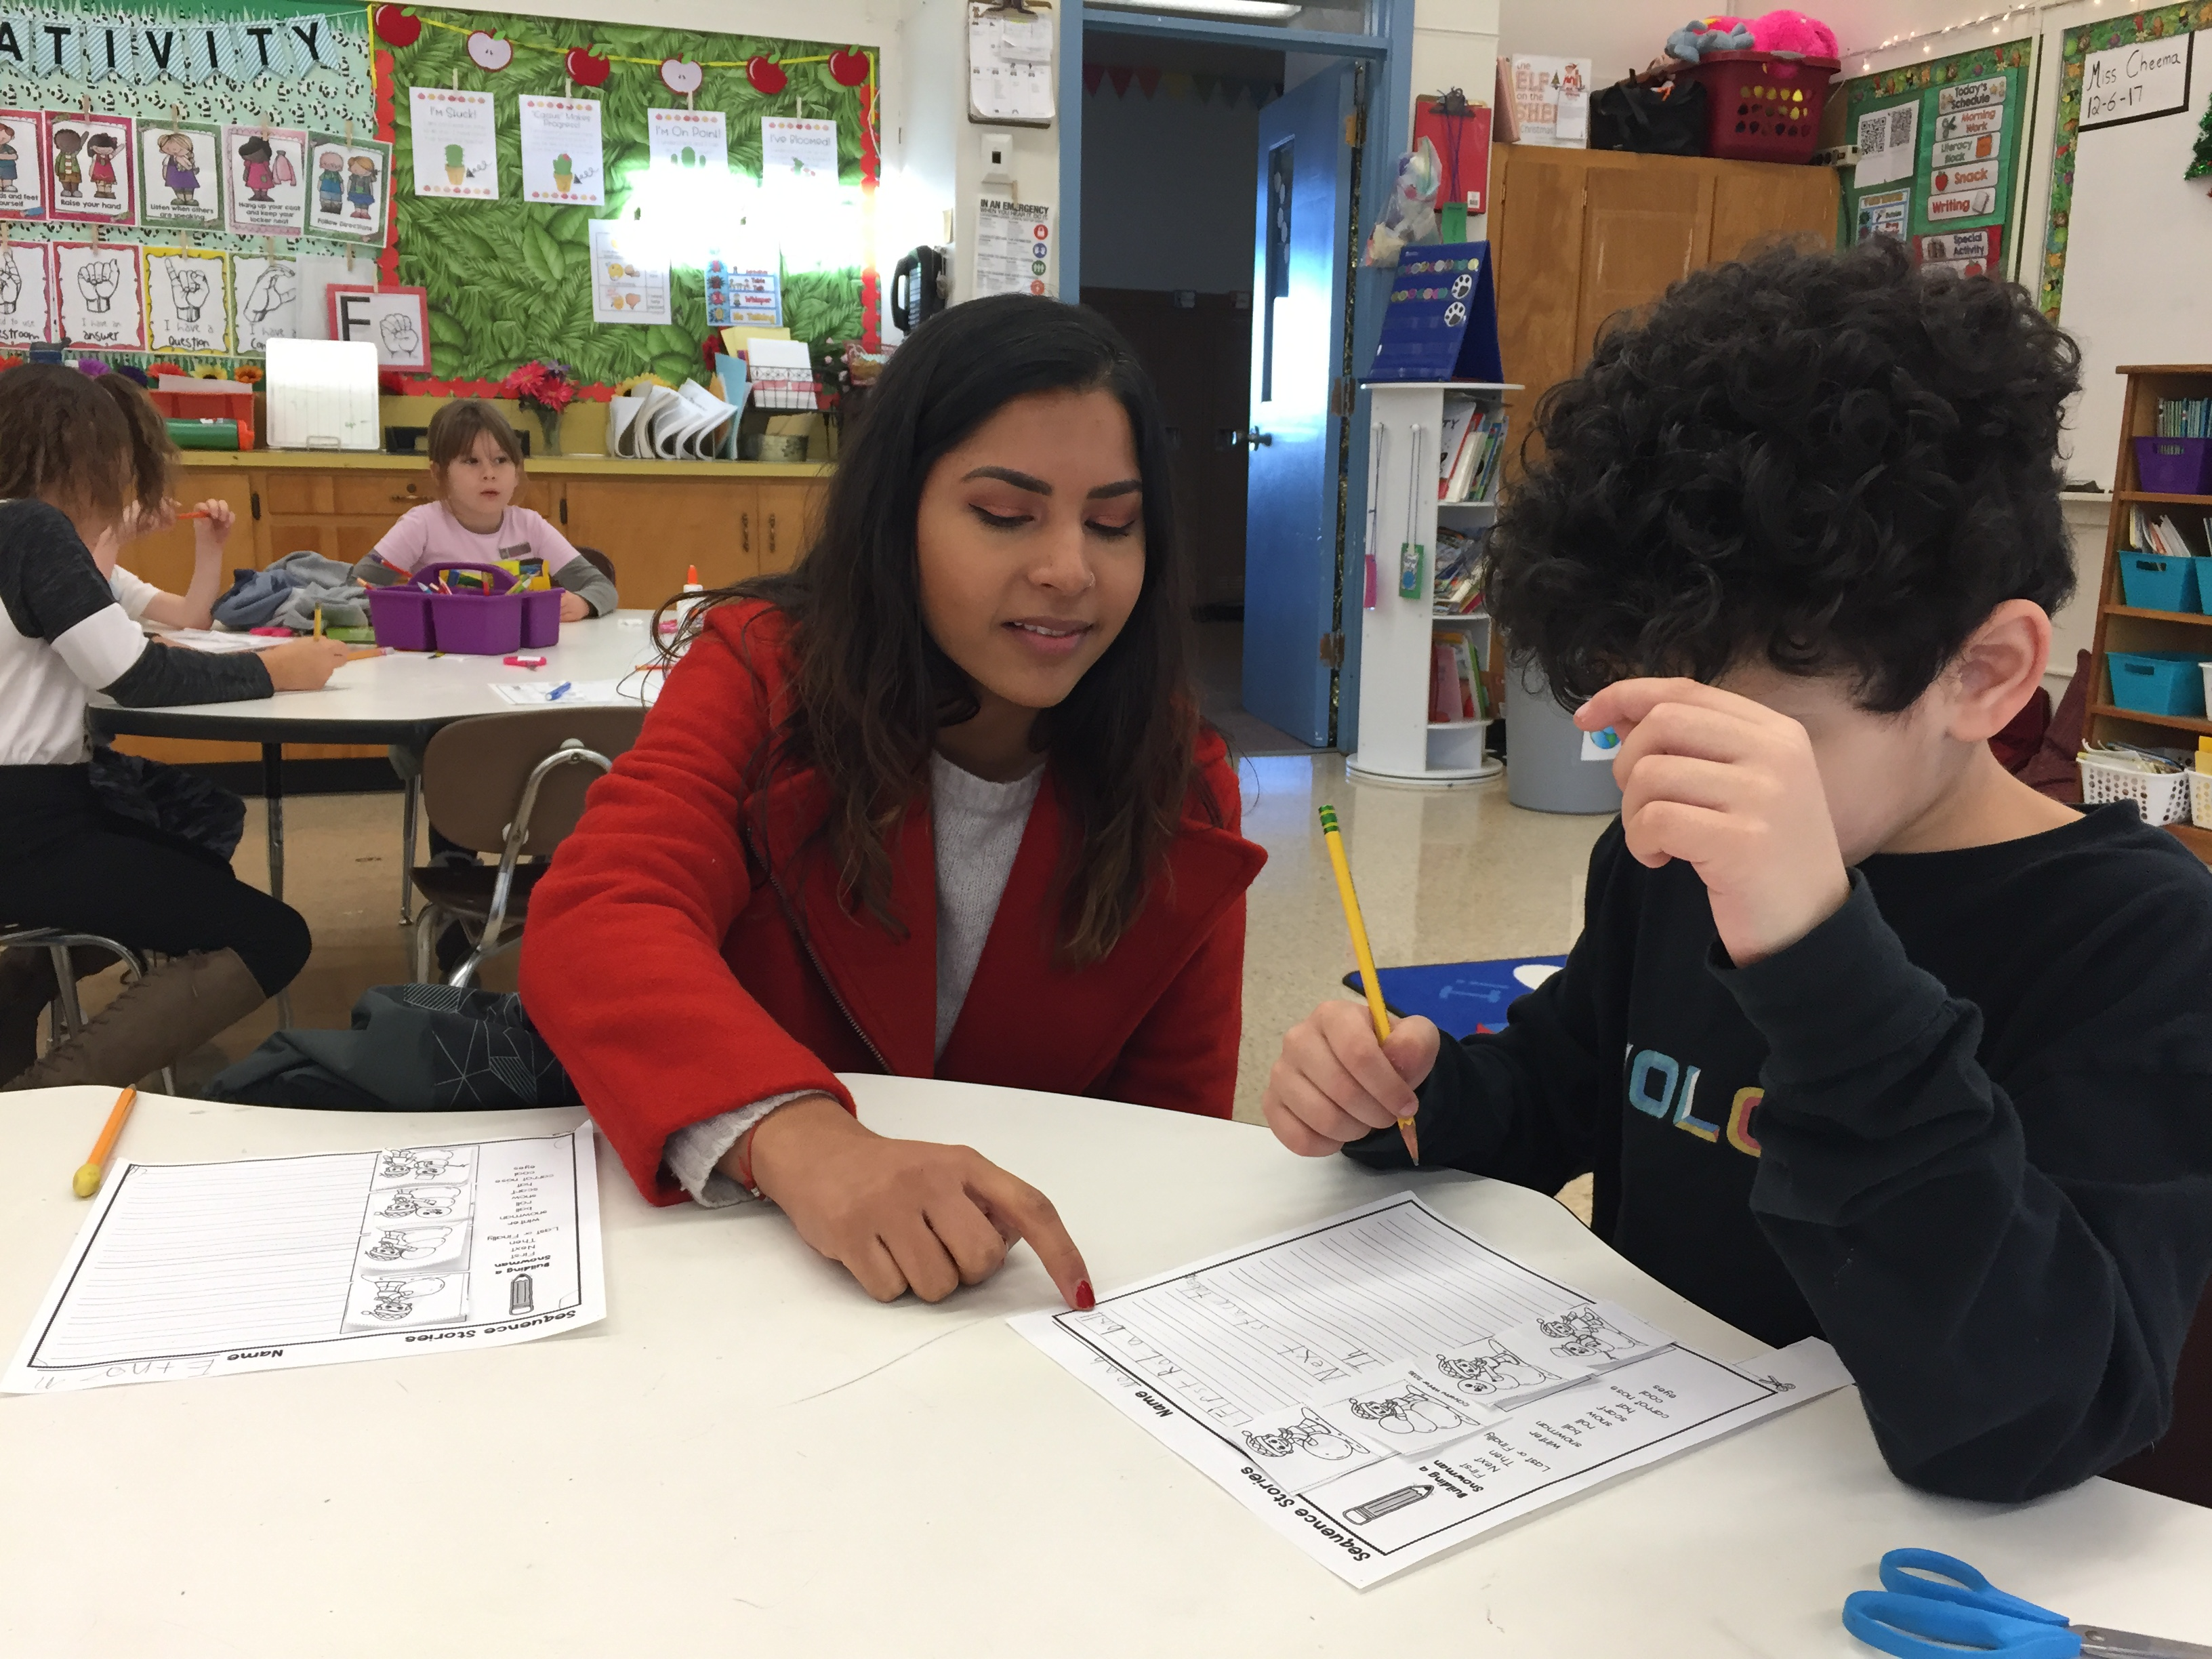 Najma Cheema leads reading activities with students before lunch.